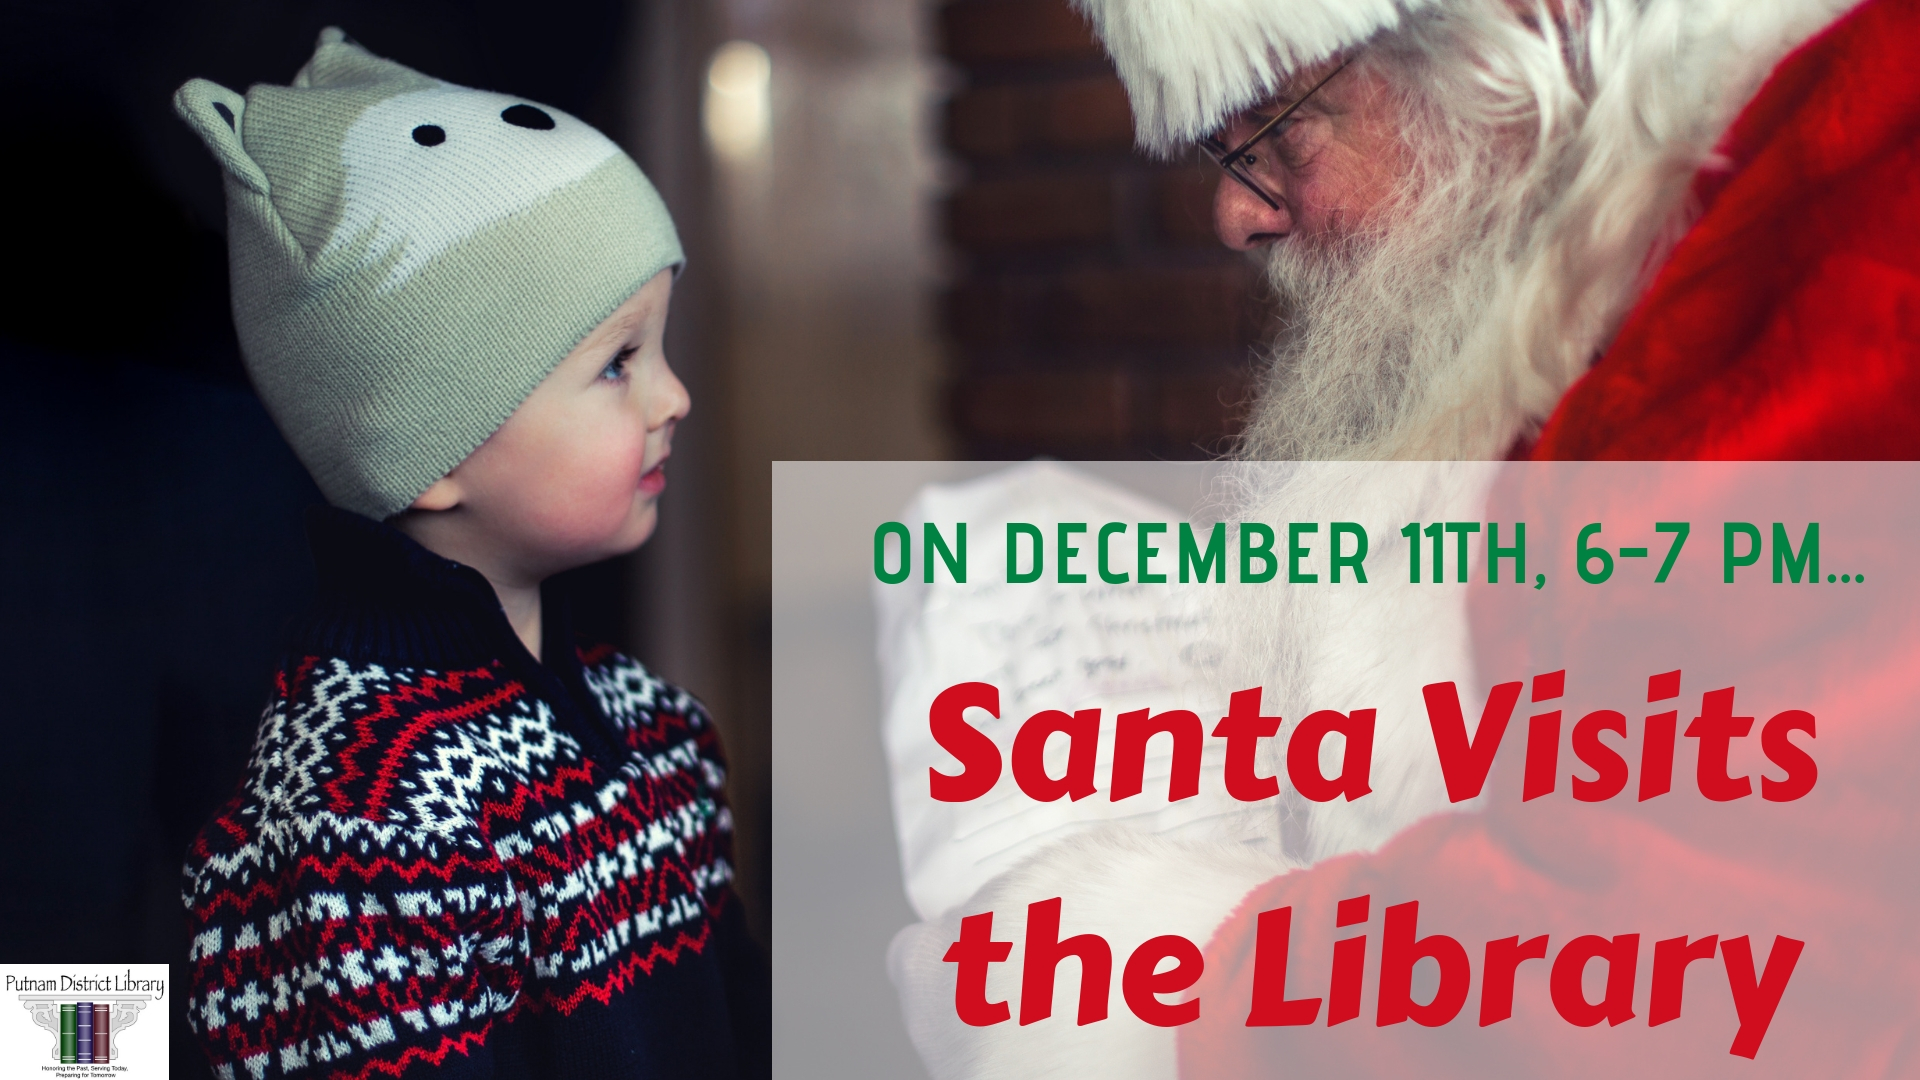 Santa Visits the Library!